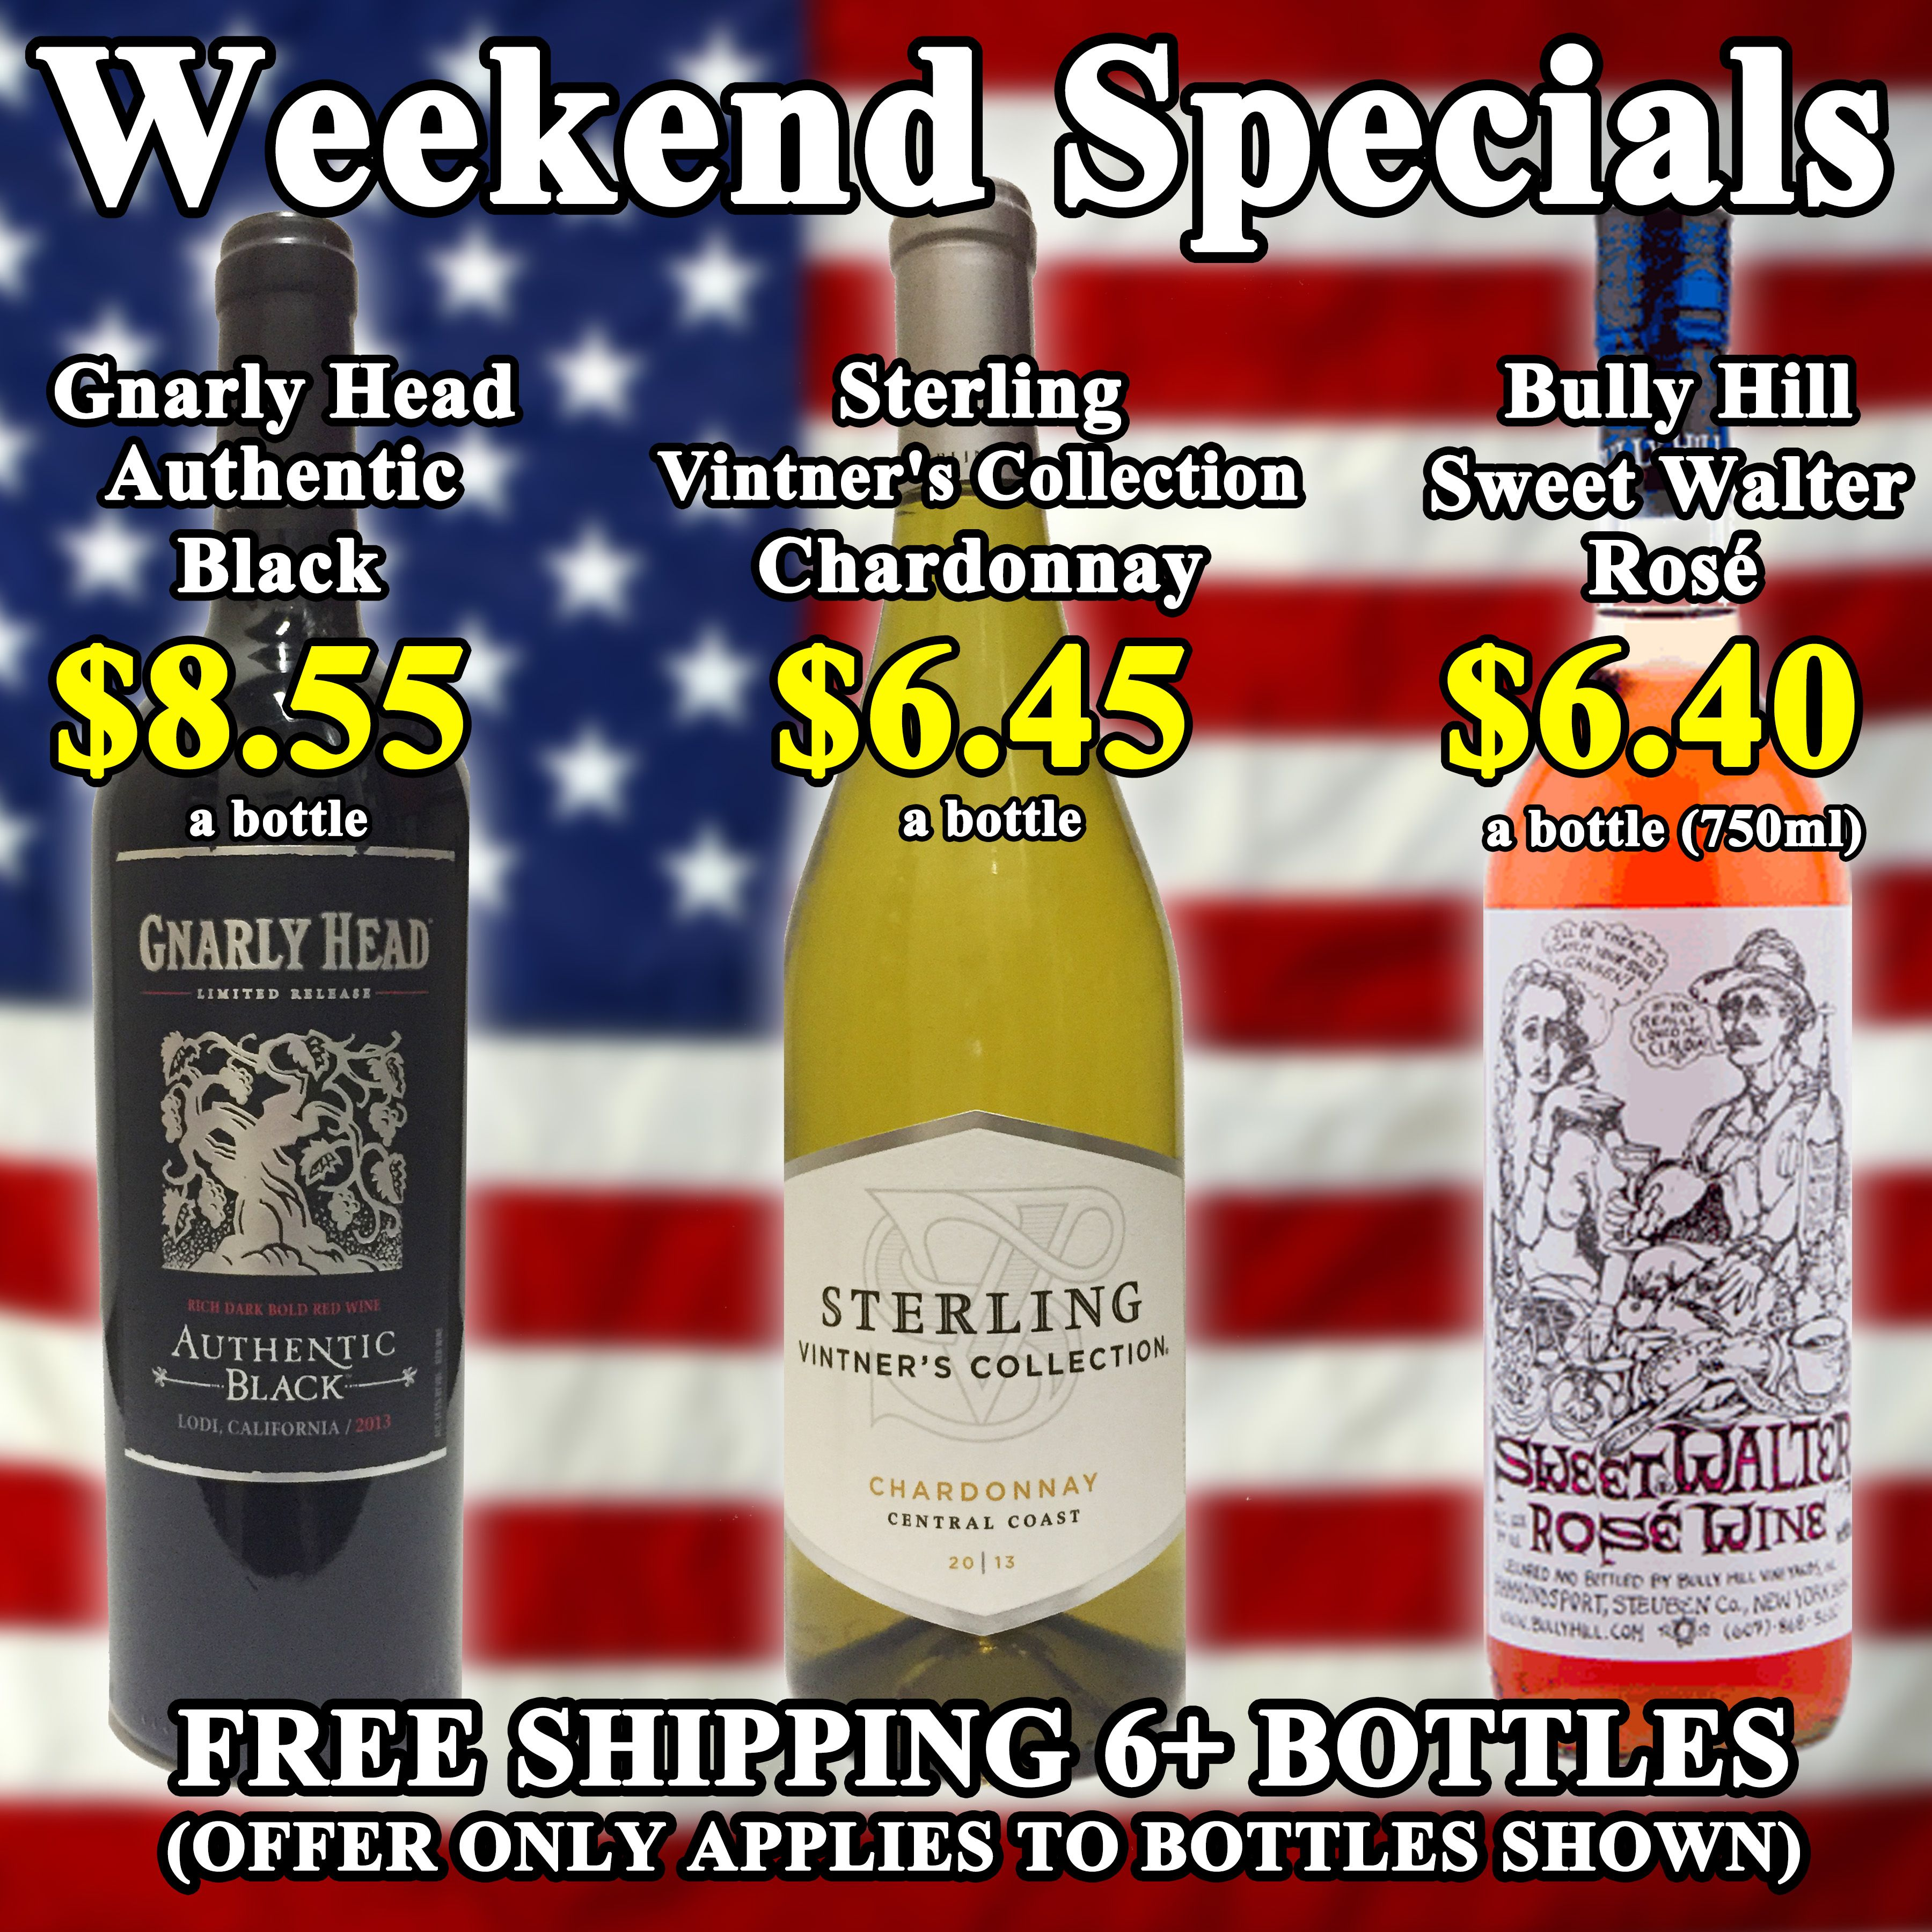 Memorial Day Weekend Specials Gnarly Head Authentic Black 8 55 Aromas Of Black Cherry Black Licorice Flavors Of Blackberry Vintner Wine Making Liquor